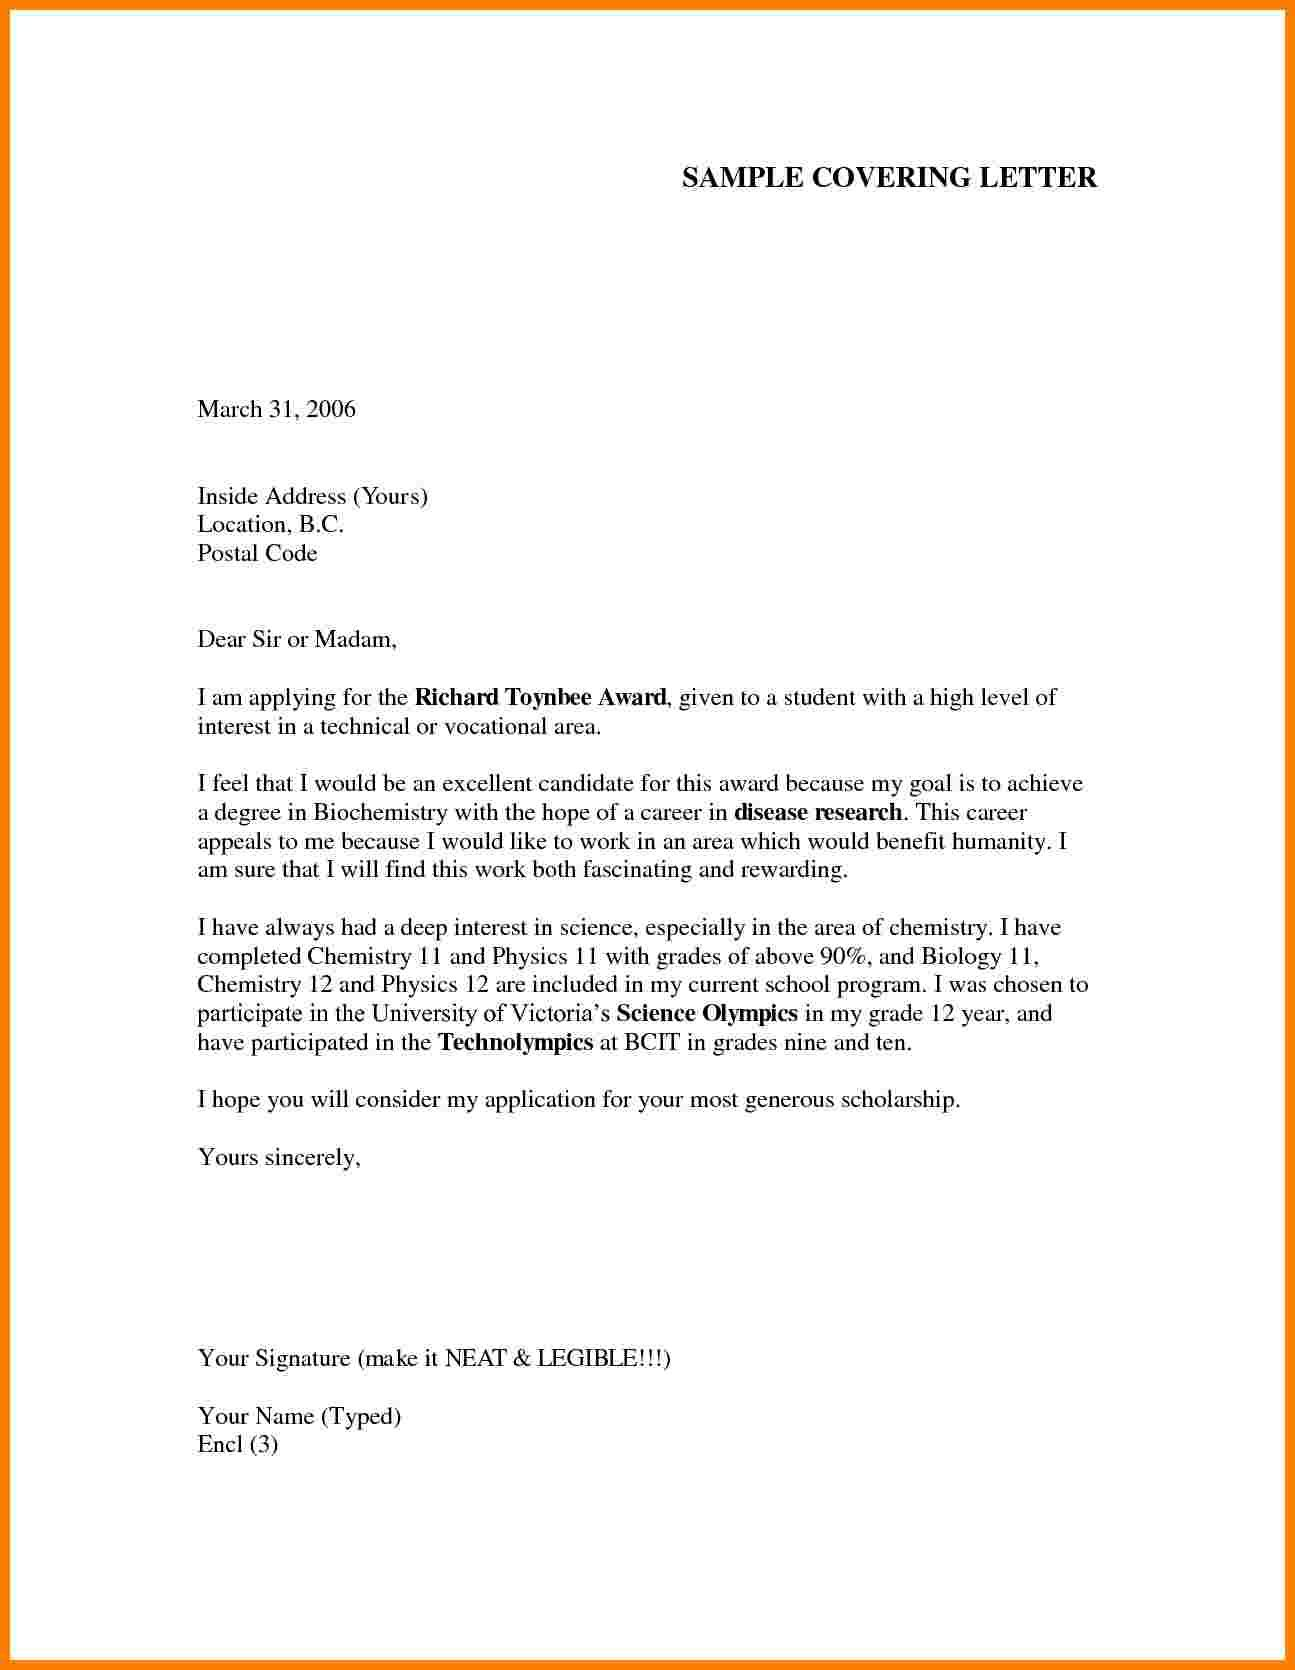 Cover Letter Template Teenager  cover coverlettertemplate letter teenager template  1